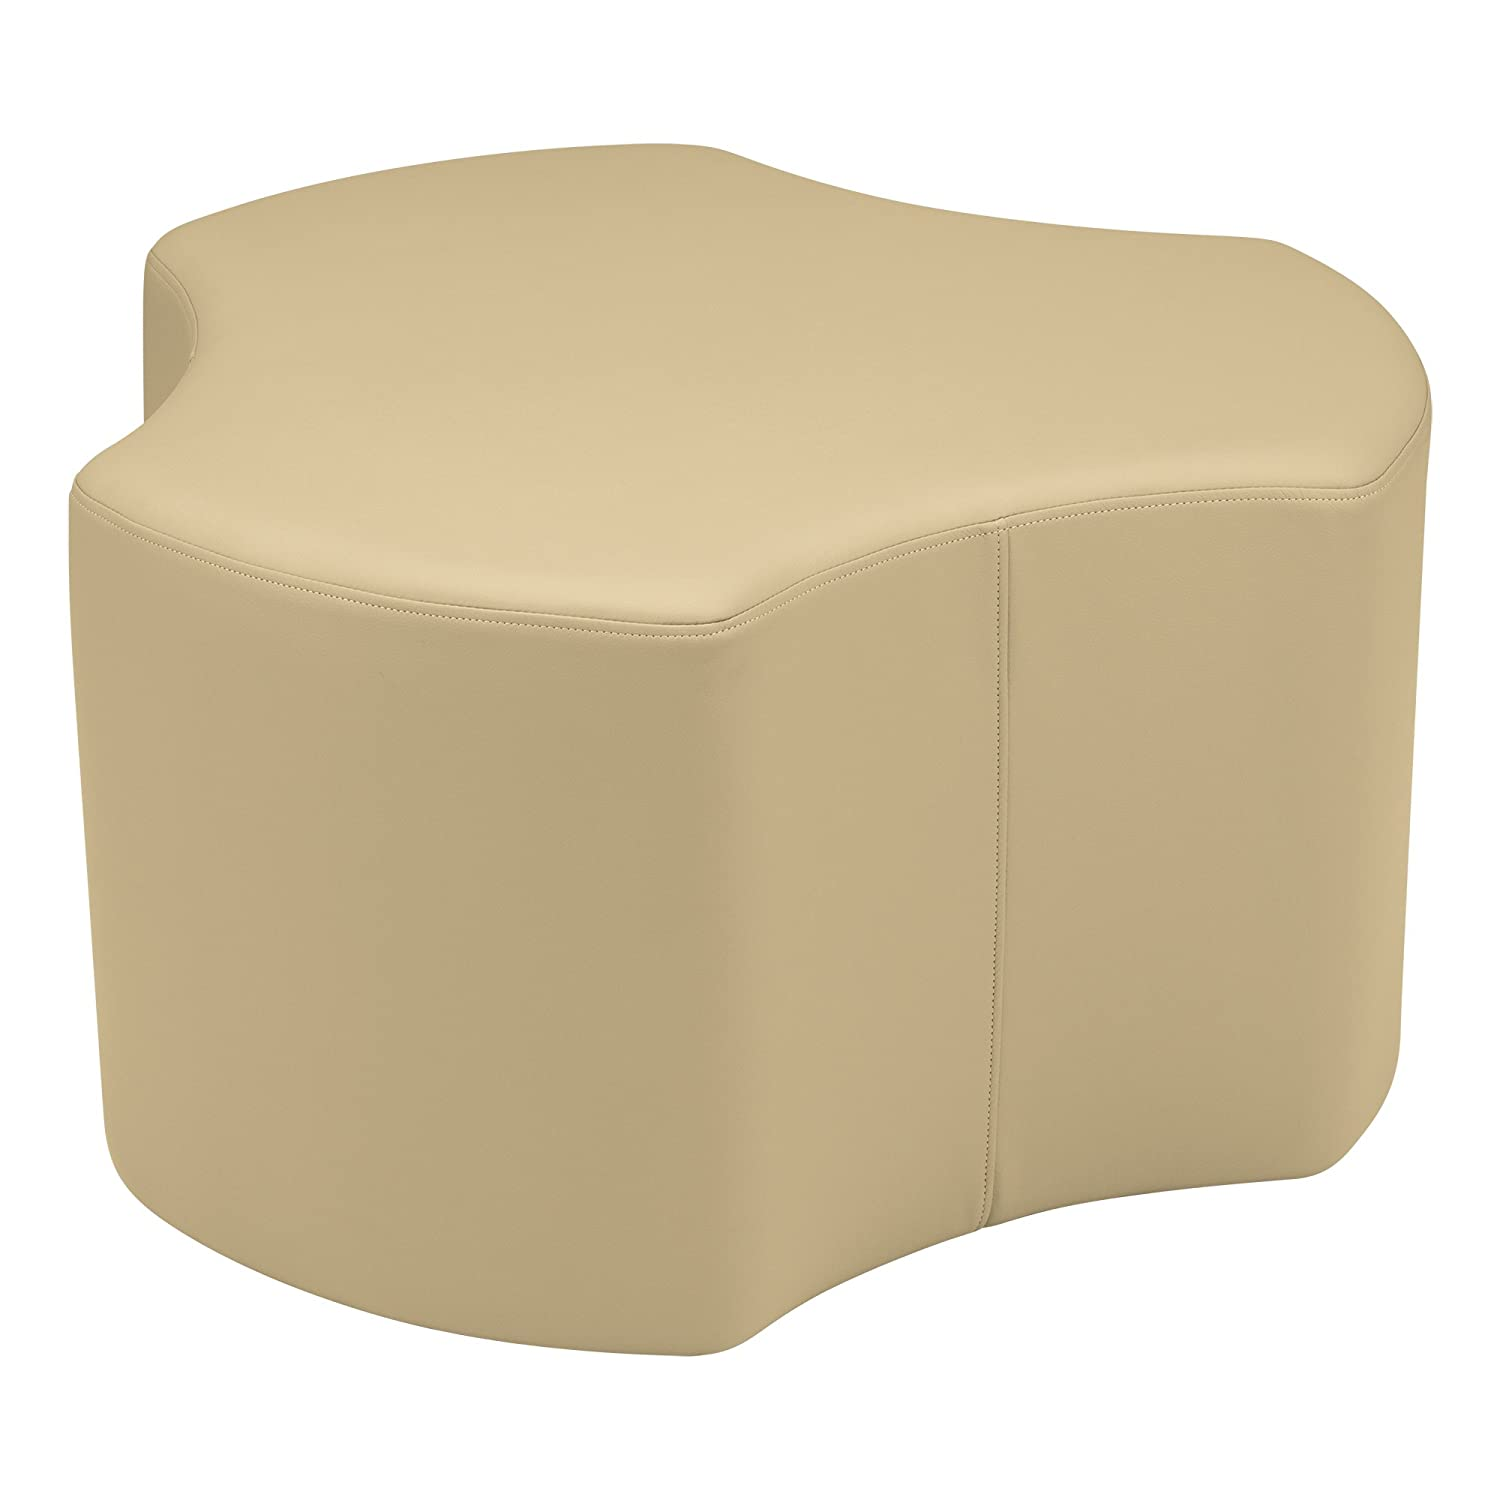 Sand 18  Sprogs Vinyl Soft Seating Gear Stool, 18  H, bluee, SPG-1015BL-A